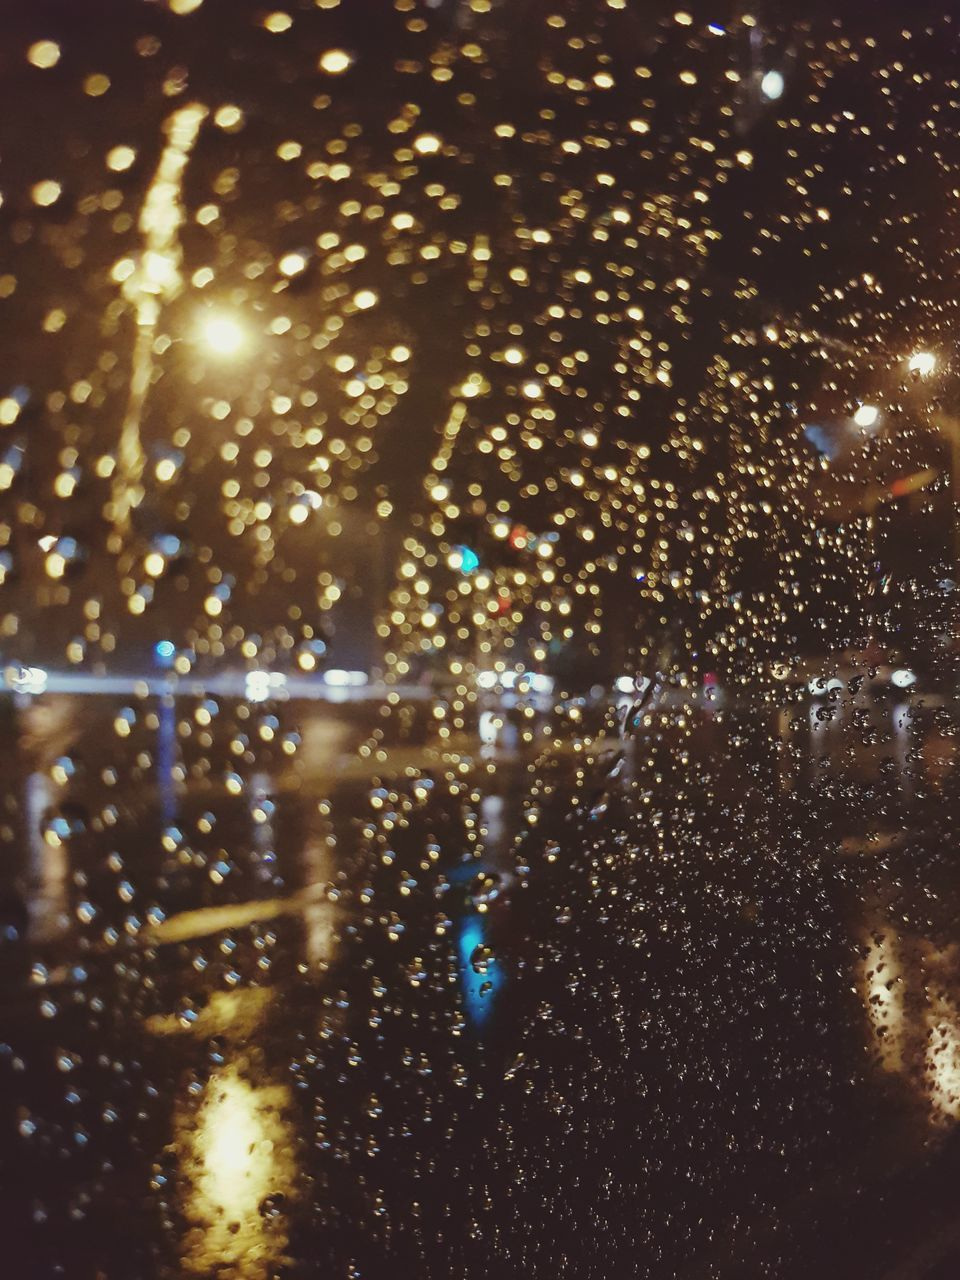 illuminated, night, drop, no people, wet, water, window, raindrop, close-up, indoors, backgrounds, defocused, nature, sky